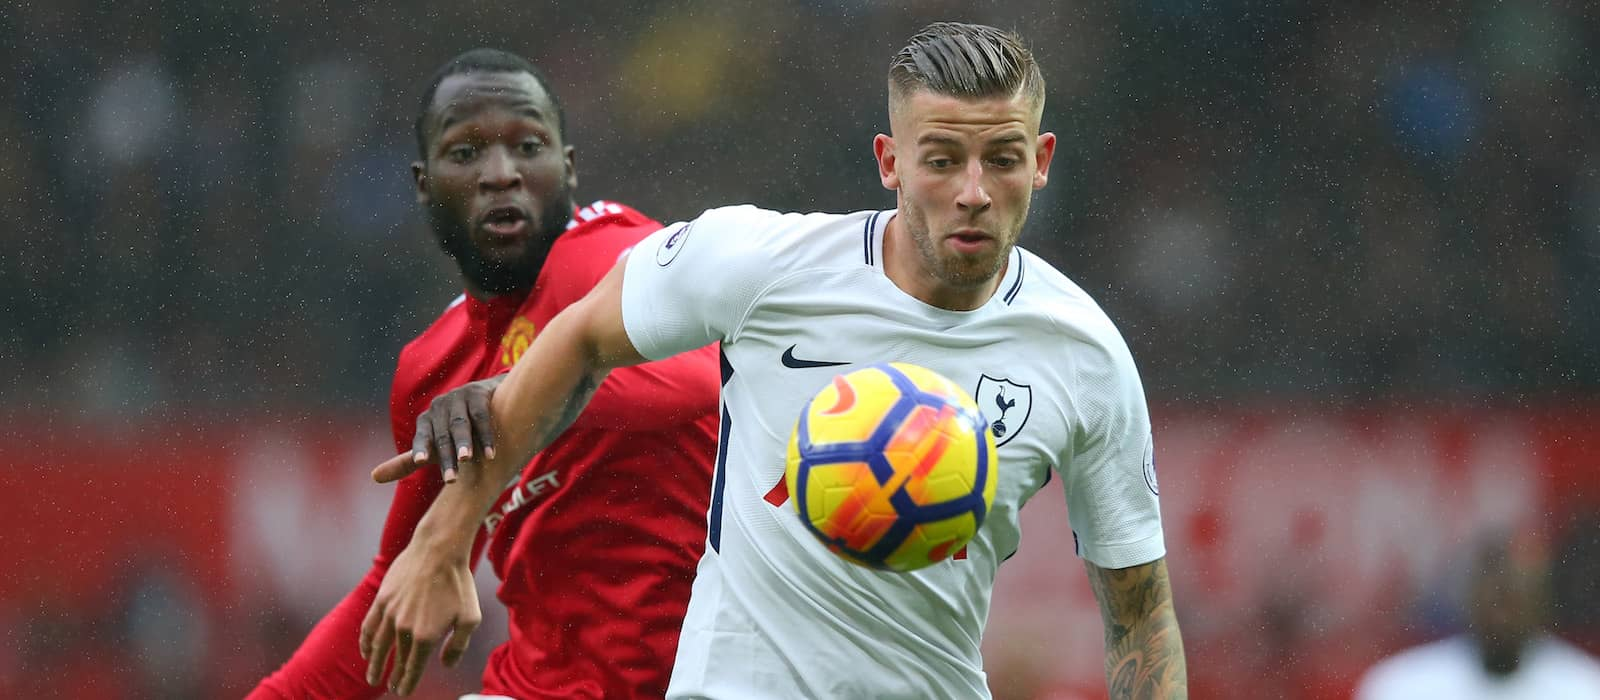 Toby Alderweireld discusses future, keeping Manchester United rumours alive